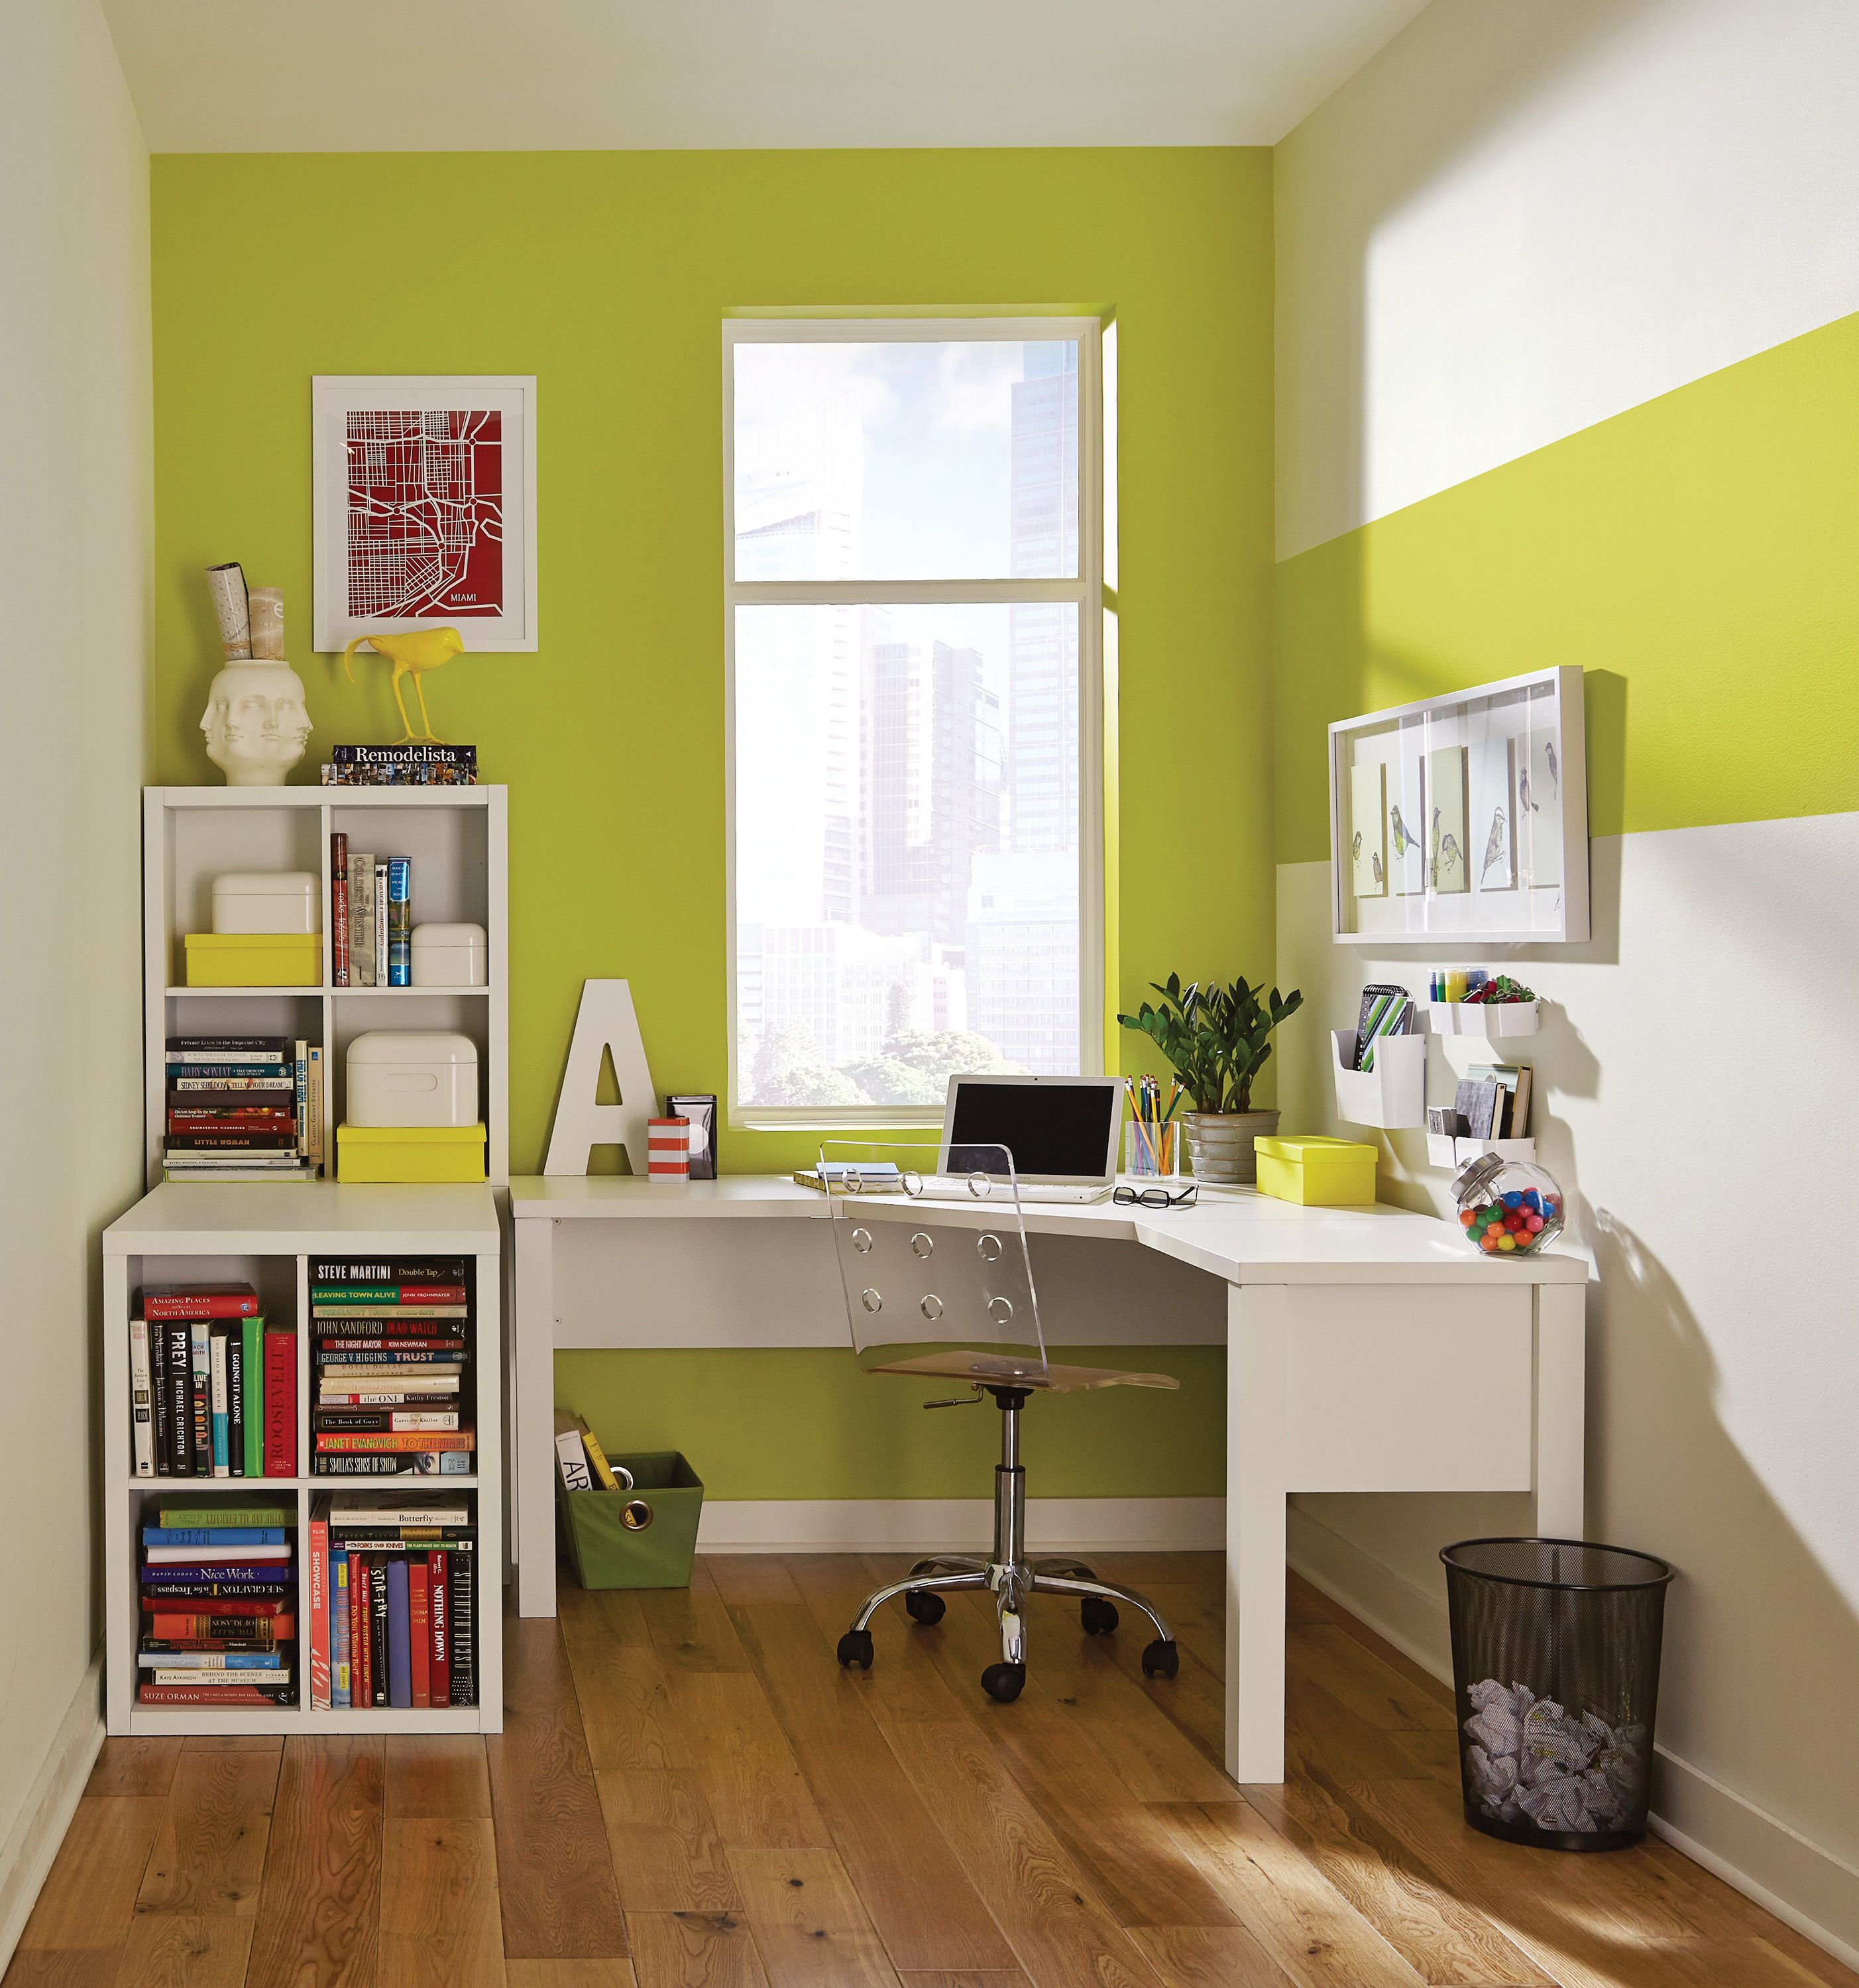 The accent wall in this tidy home office creates a strong